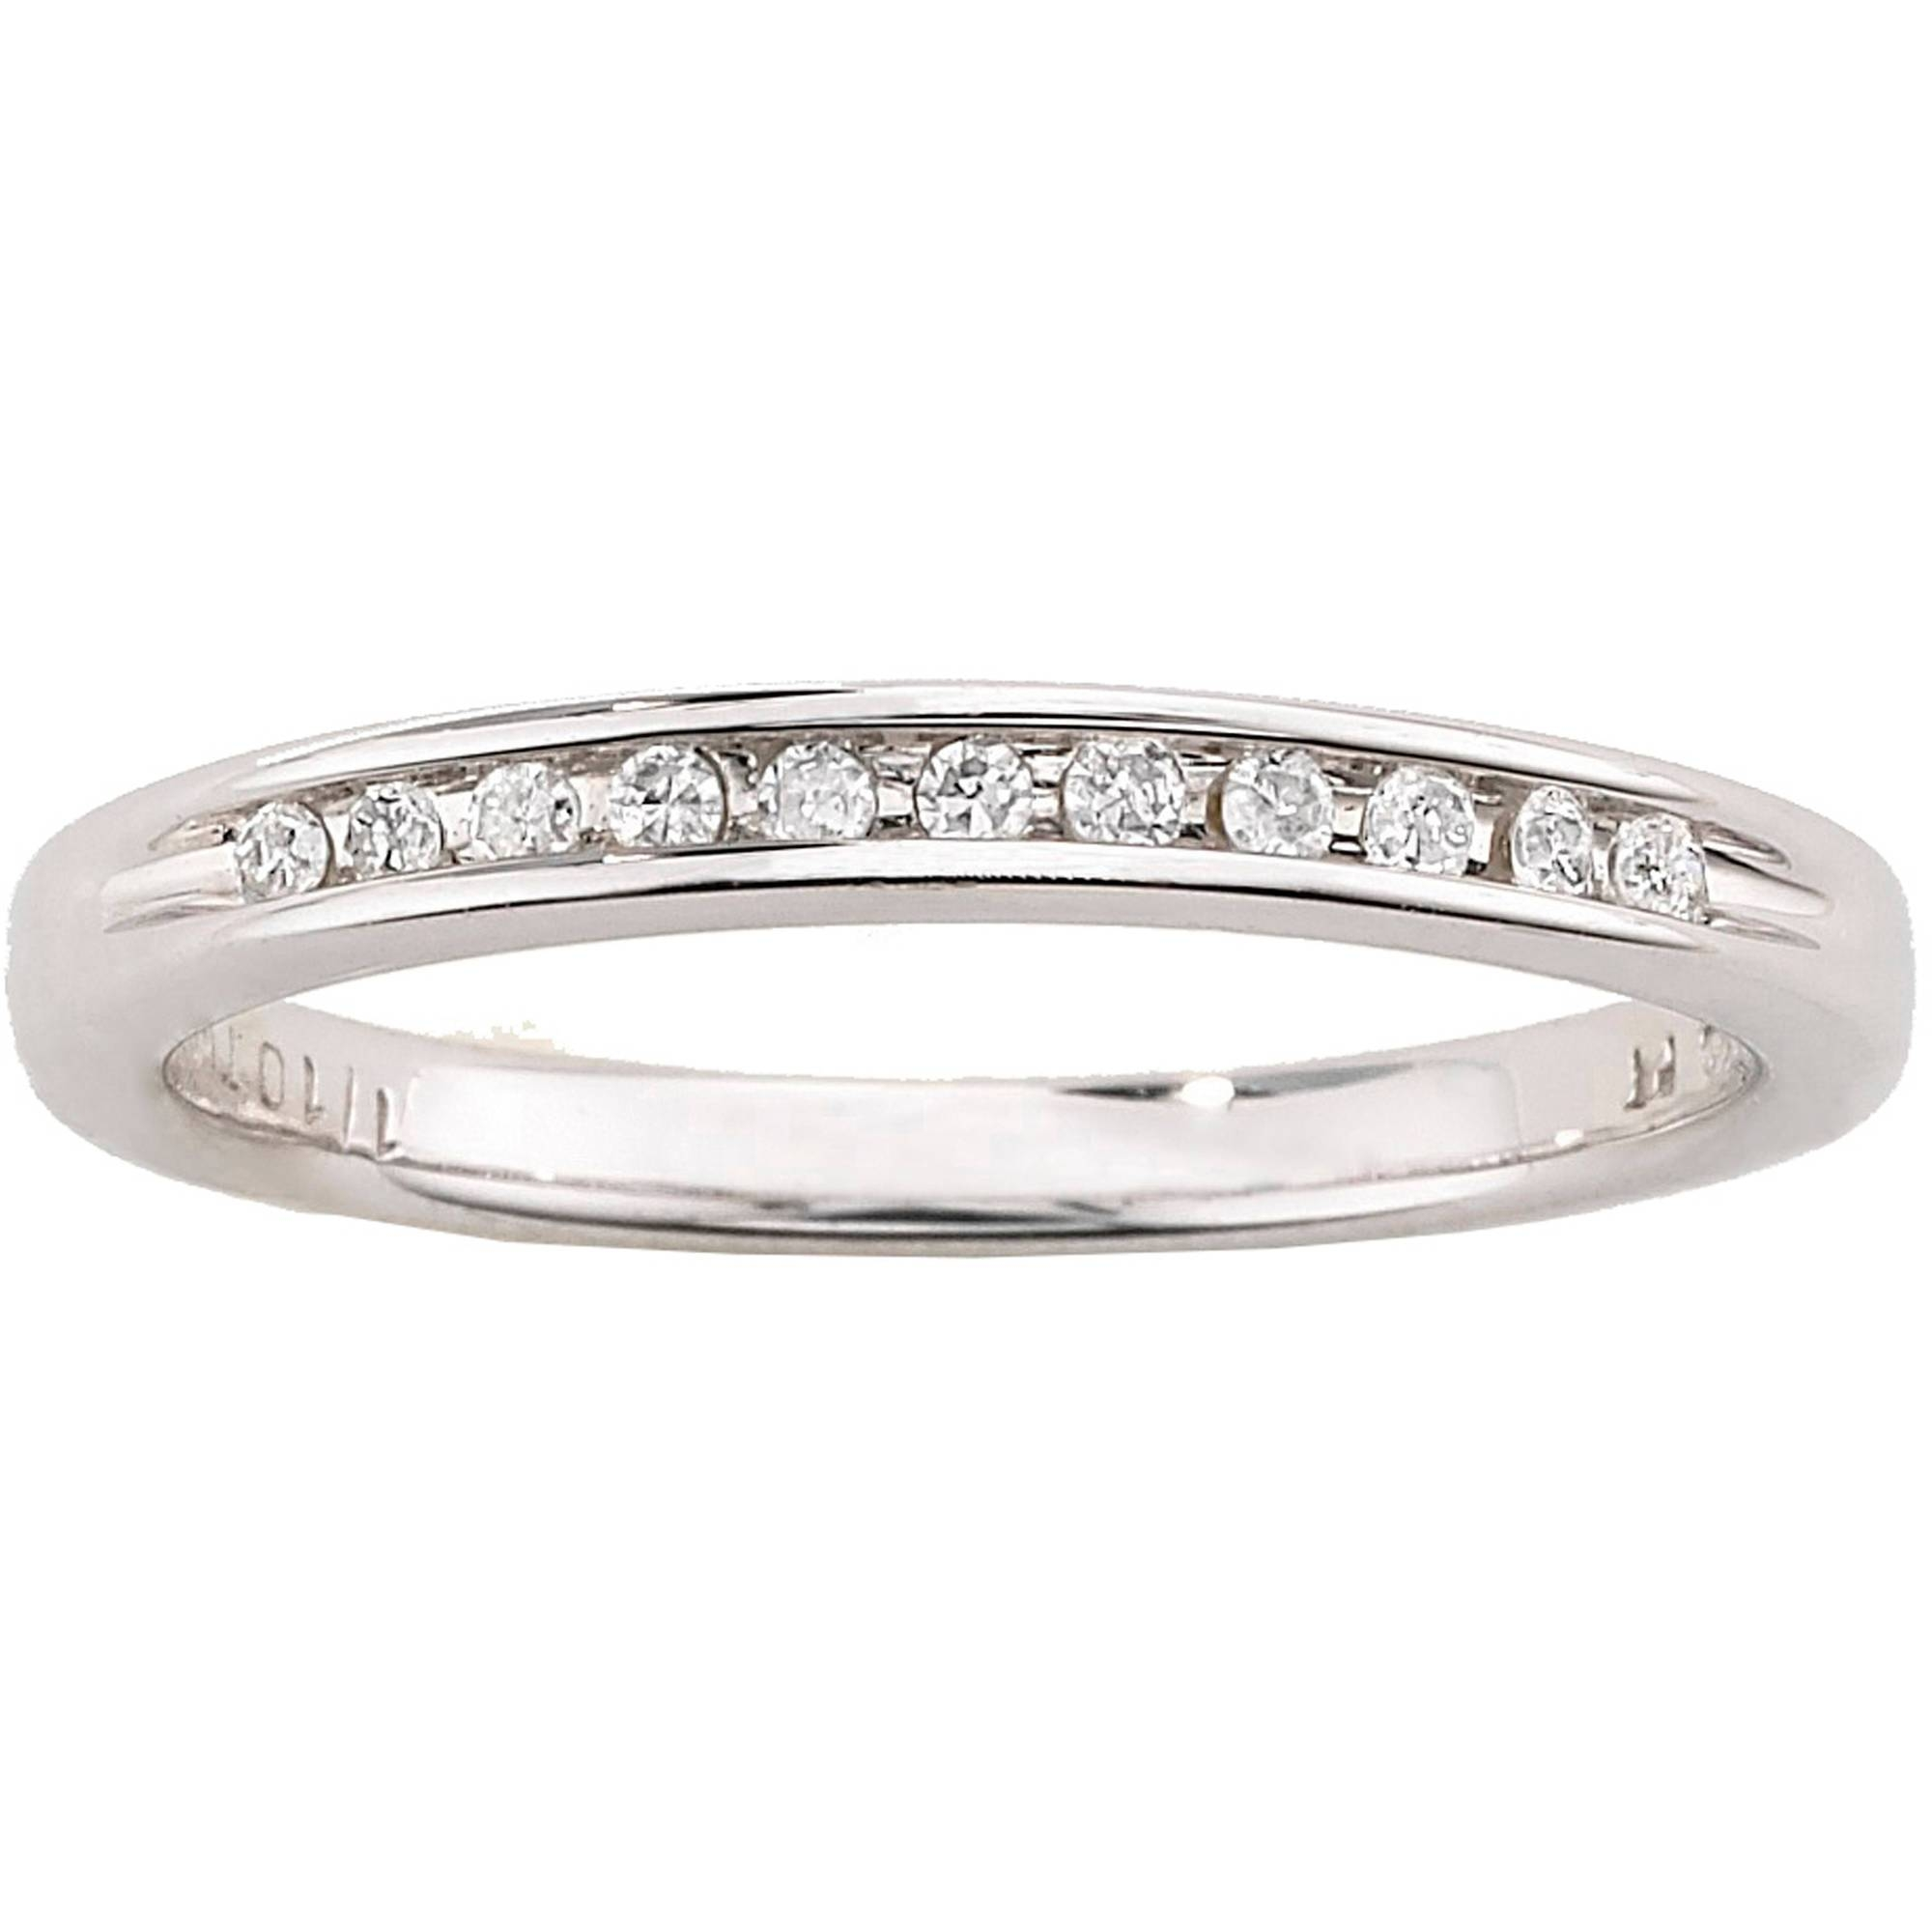 Photo Gallery of Jcpenney Jewelry Wedding Bands Viewing 12 of 15